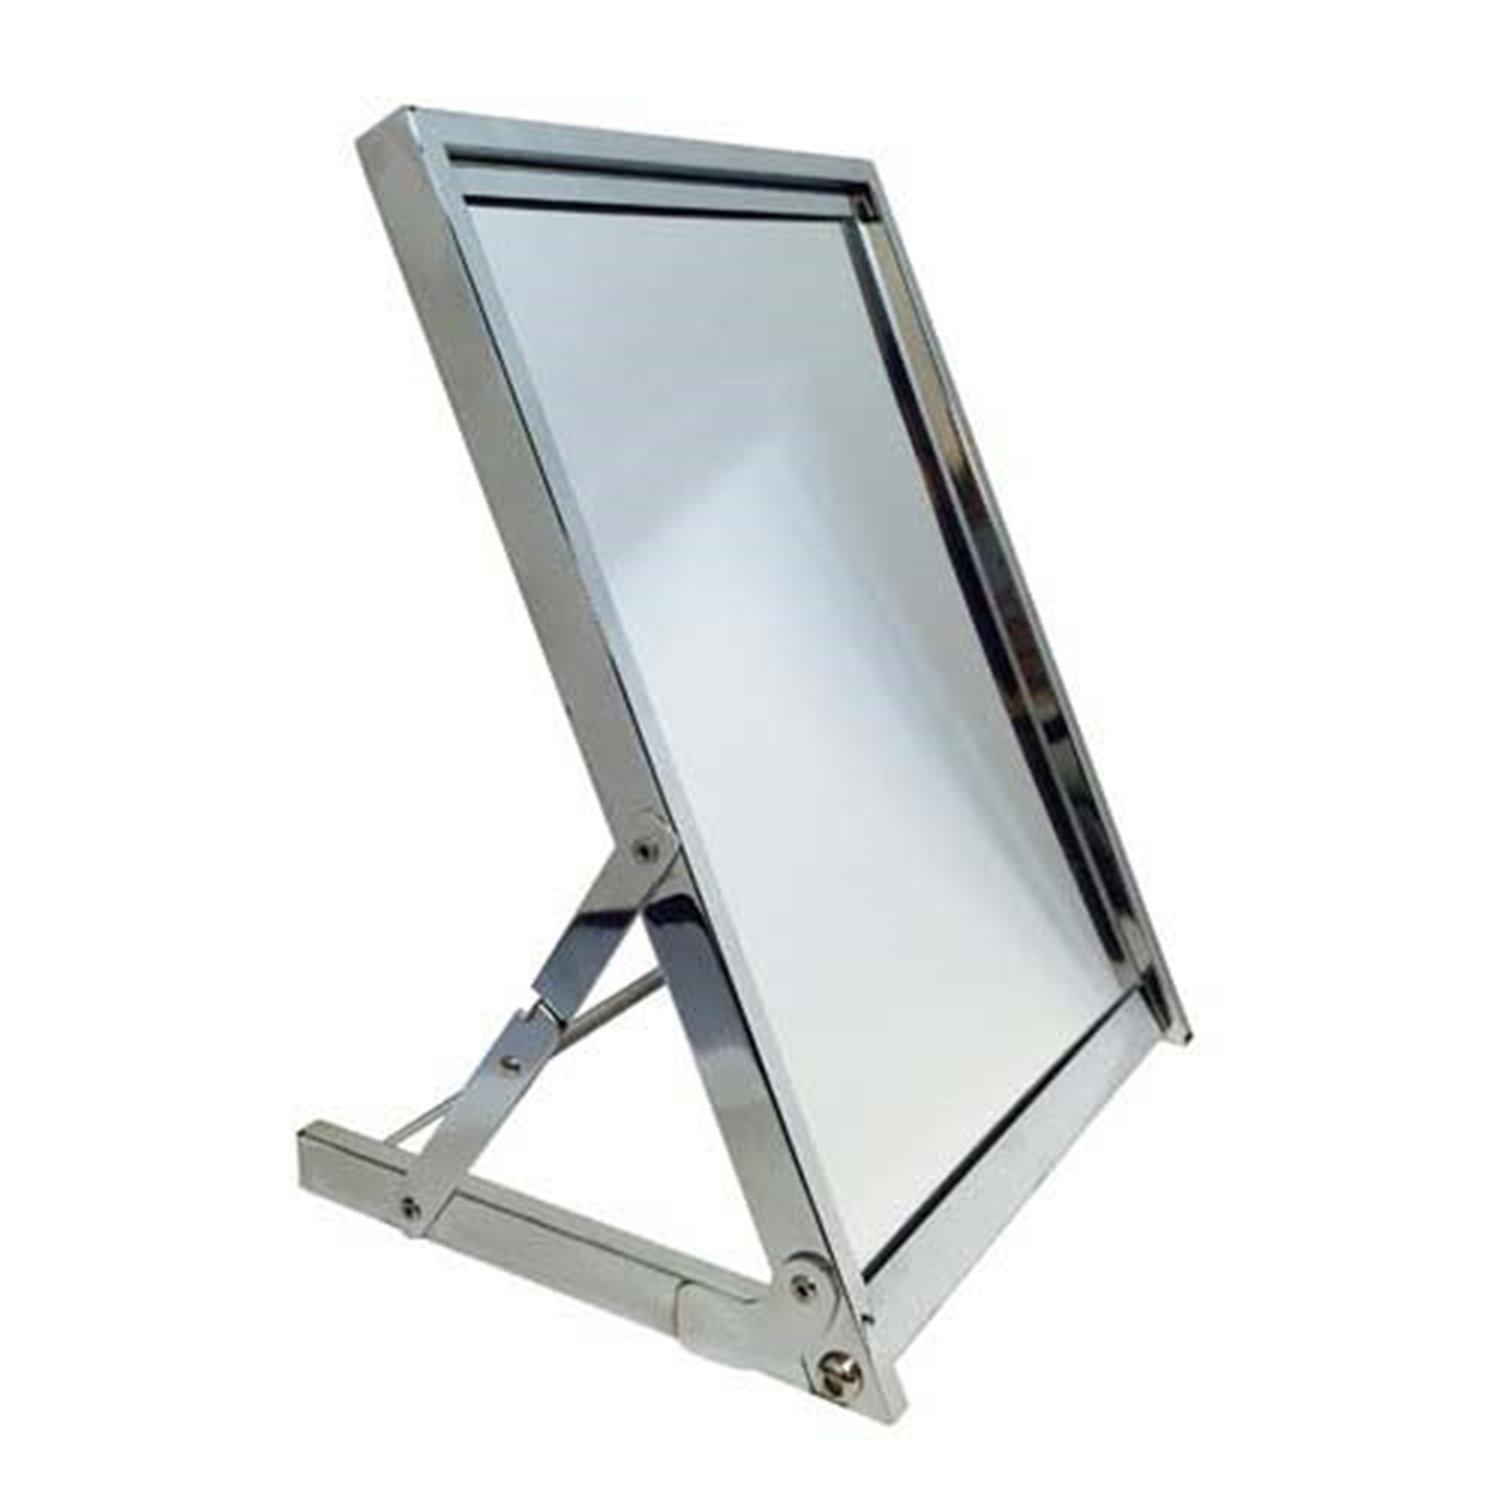 "13"" X 17"" Rectangular Folding Floor Mirror Kd - Display Fixture Warehouse Retail"